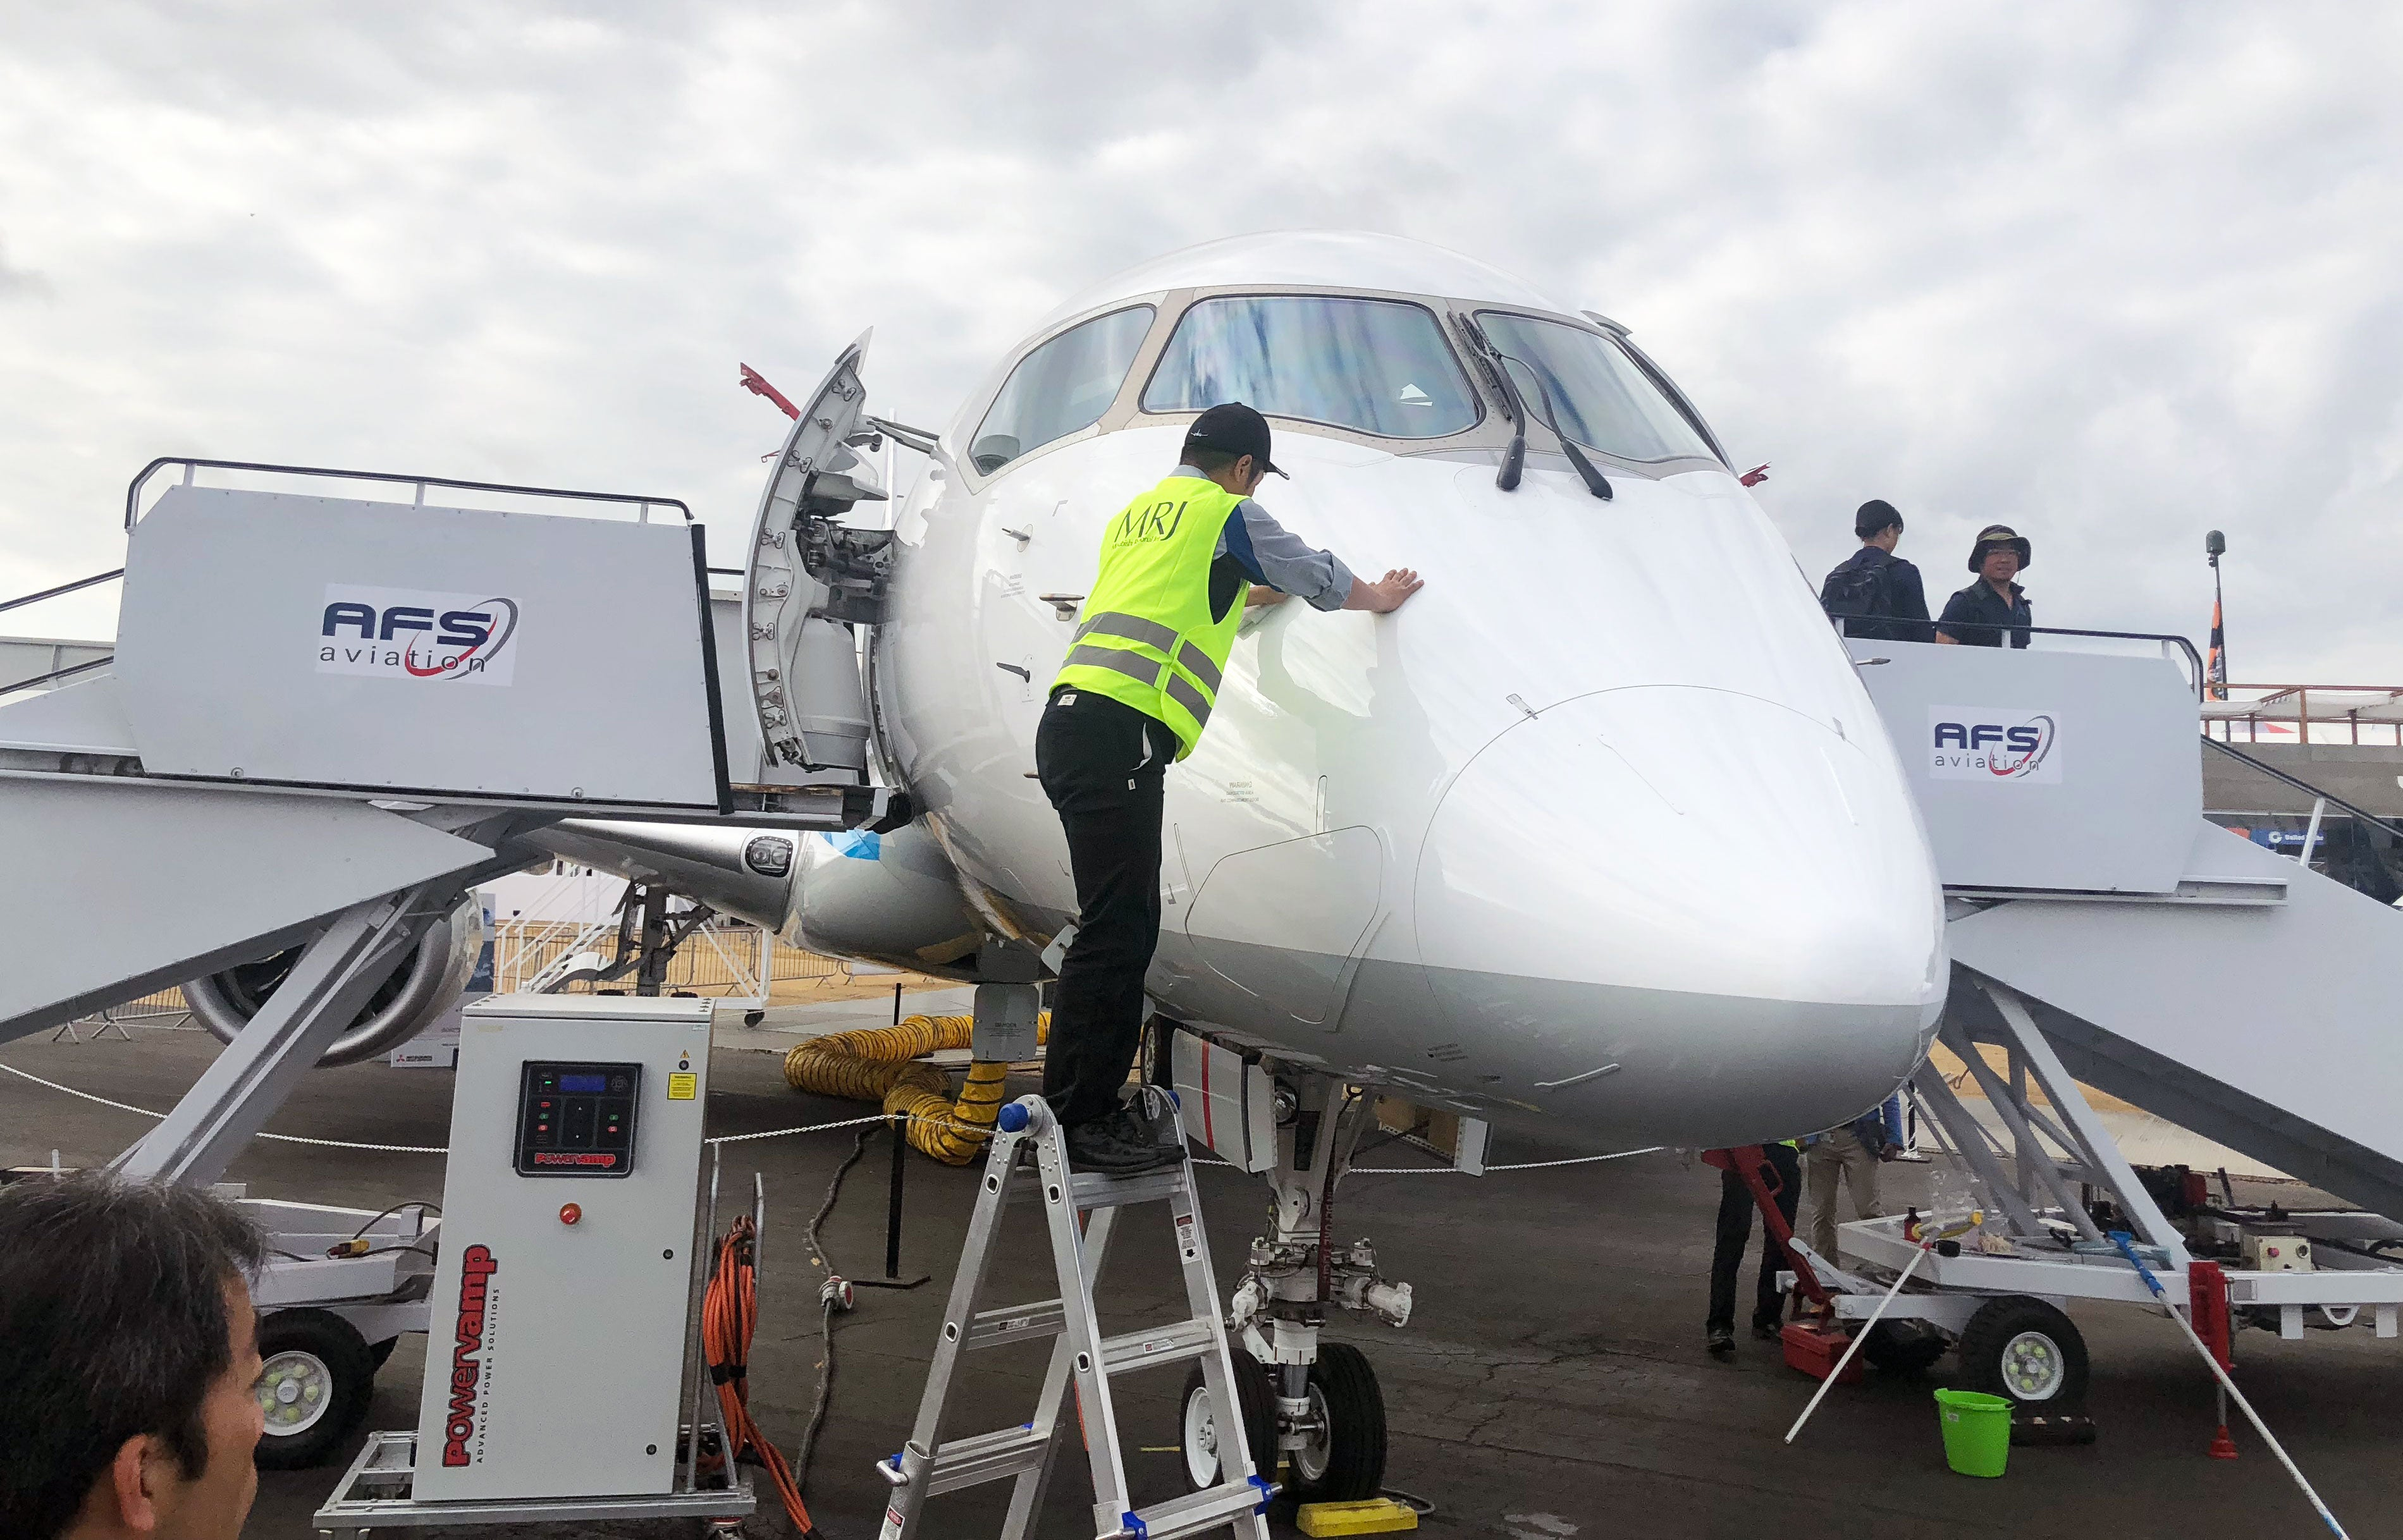 A Mitsubishi MRJ900 being spot cleaned at Farnborough. Image by author.